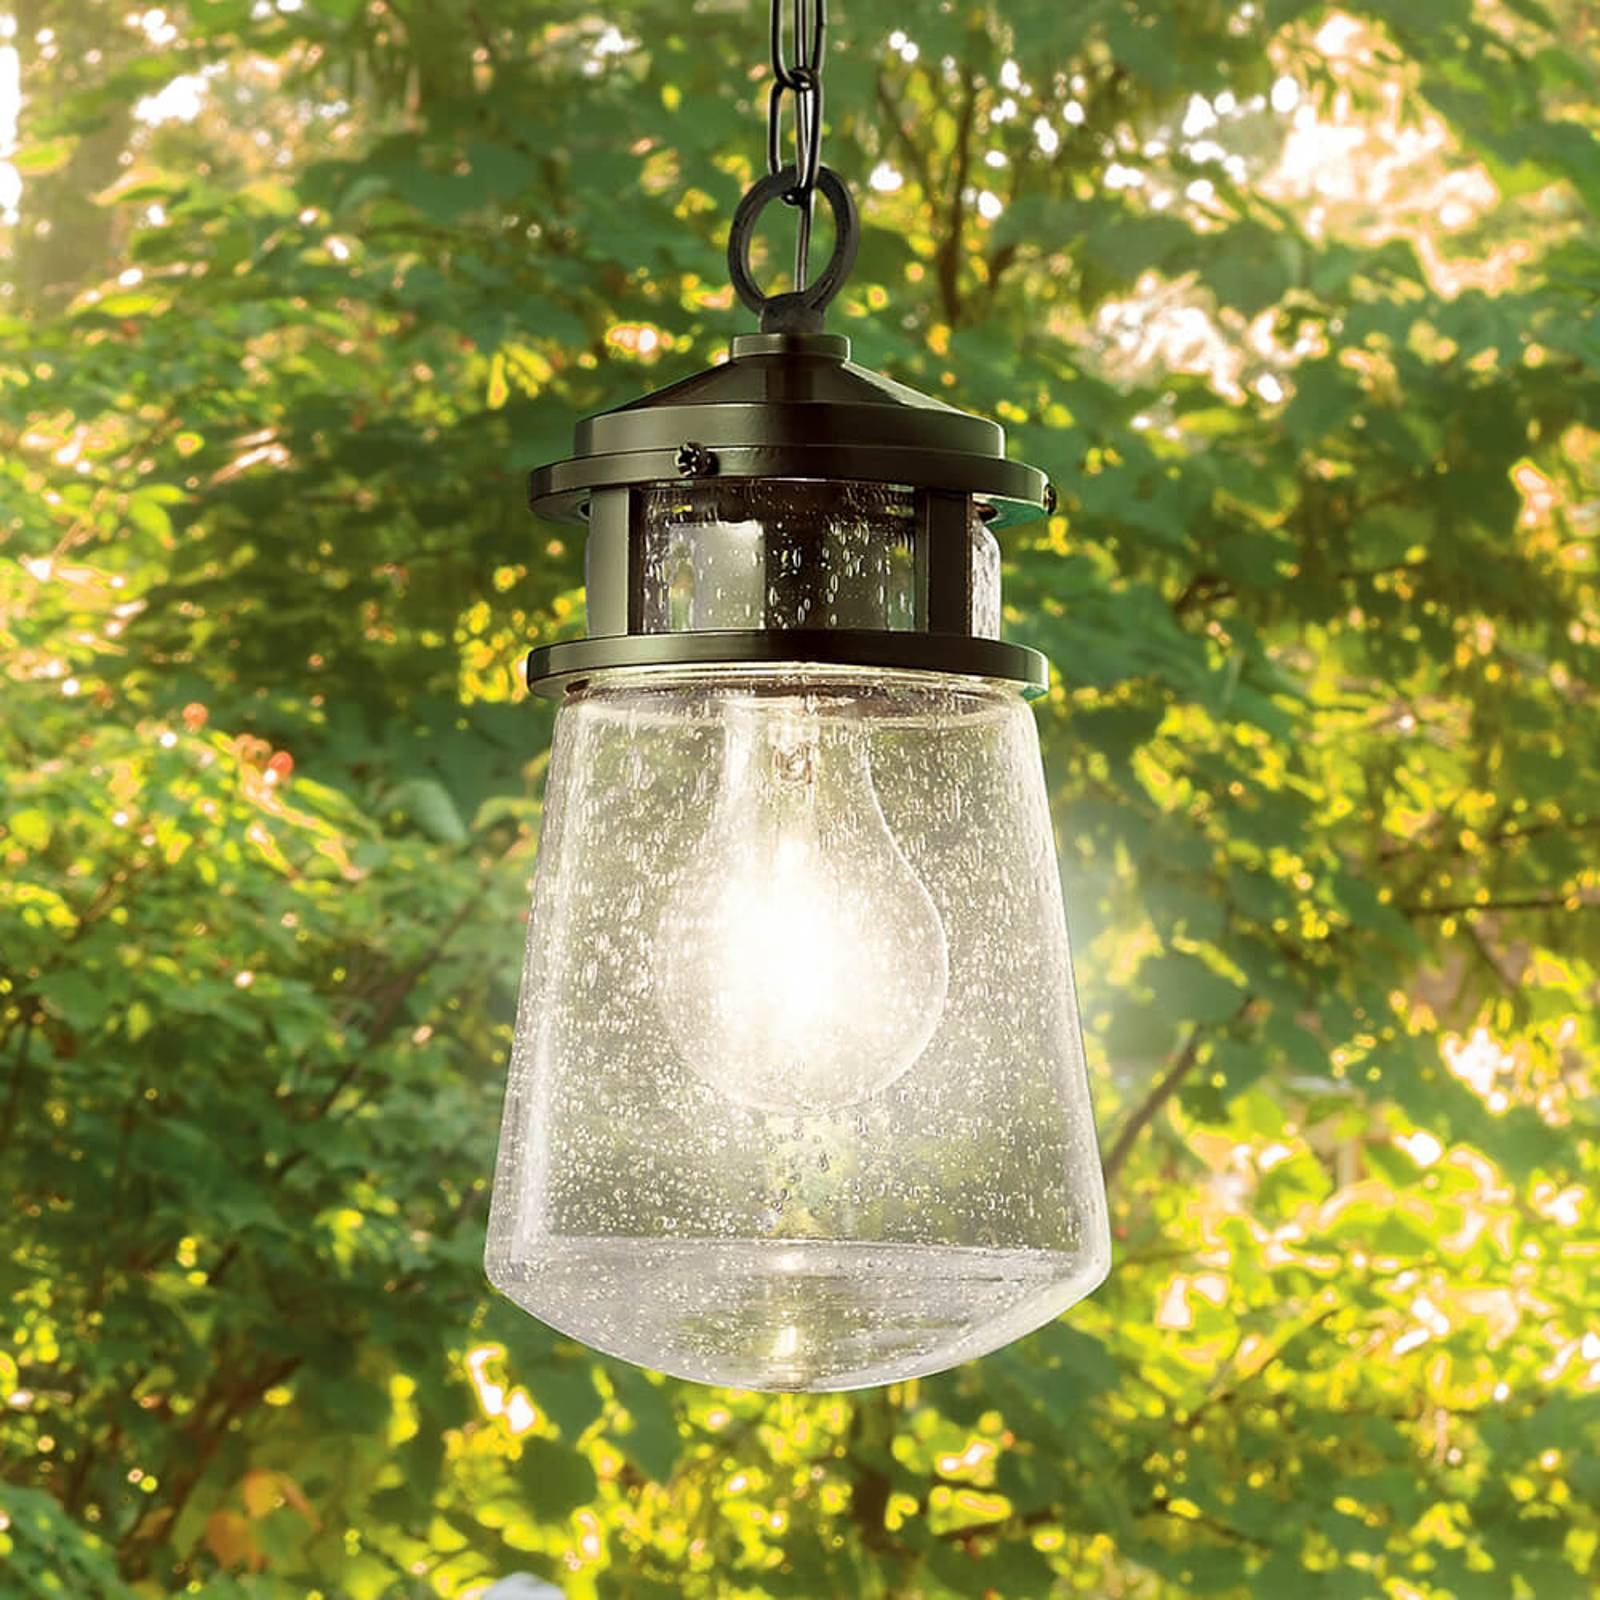 Stylish Lyndon pendant light for outdoors from KICHLER